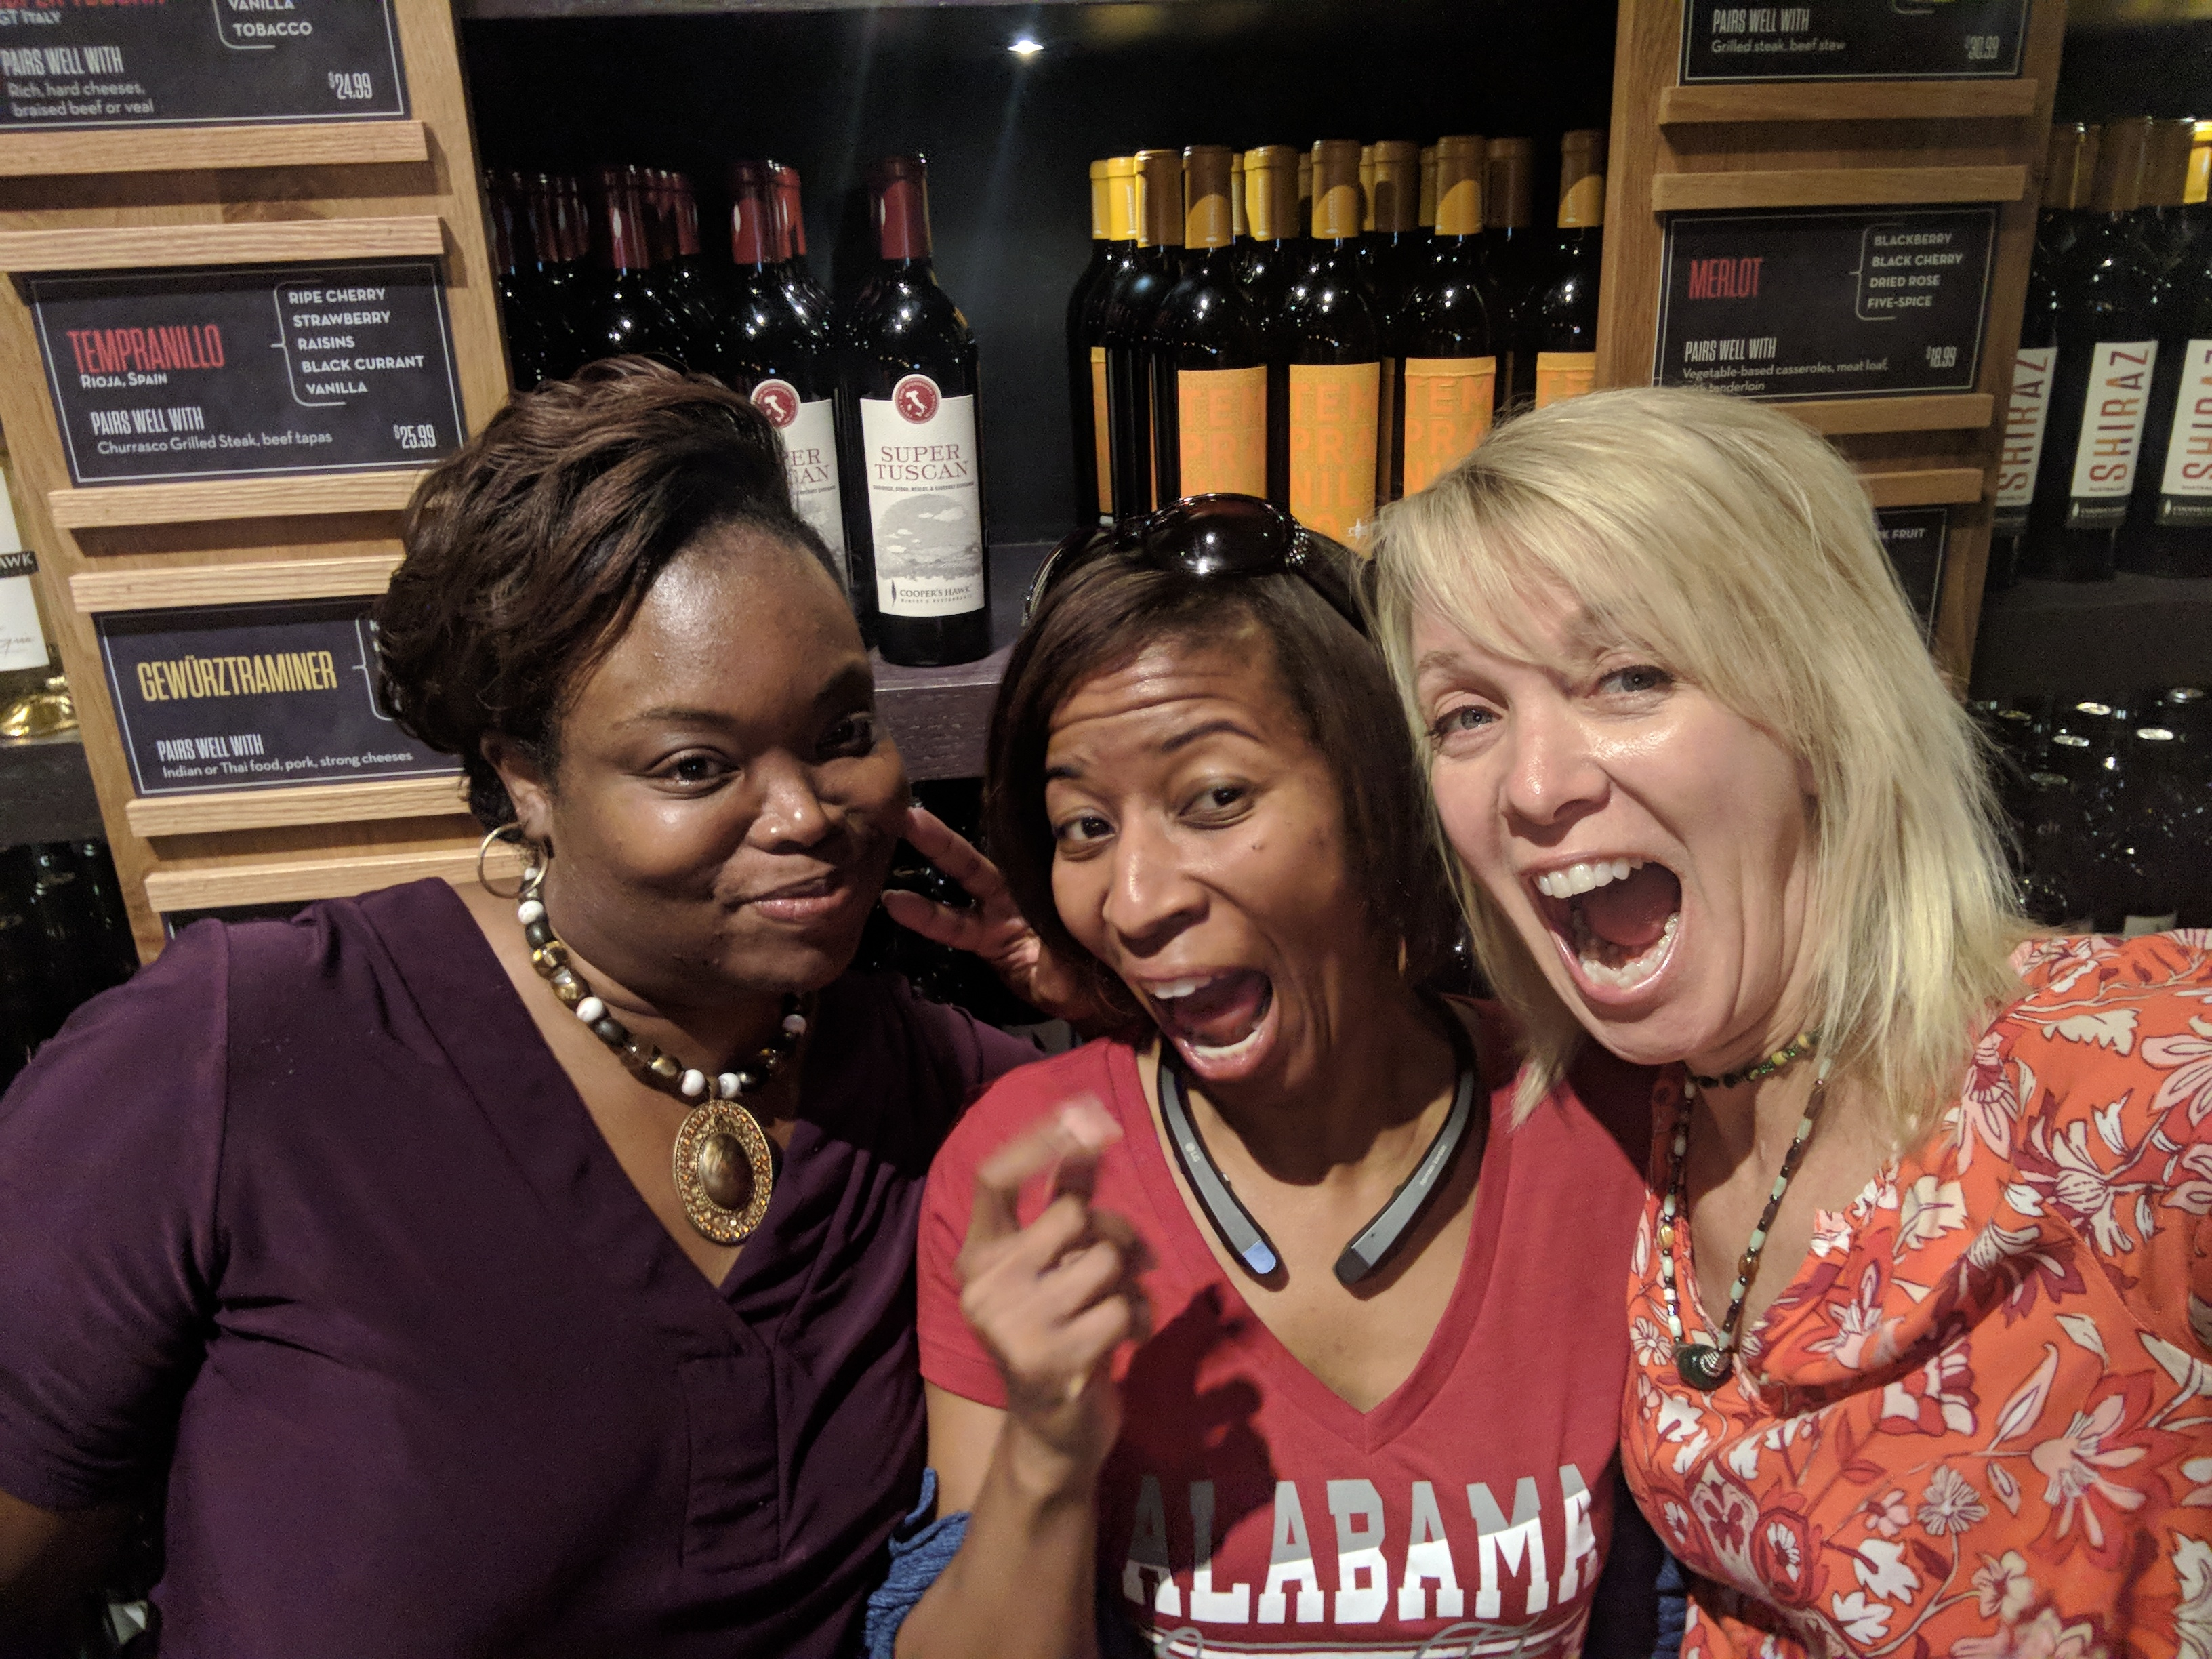 Three female friends make crazy faces in front of wine bottles at a restaurant. The Ebony Working Girl.